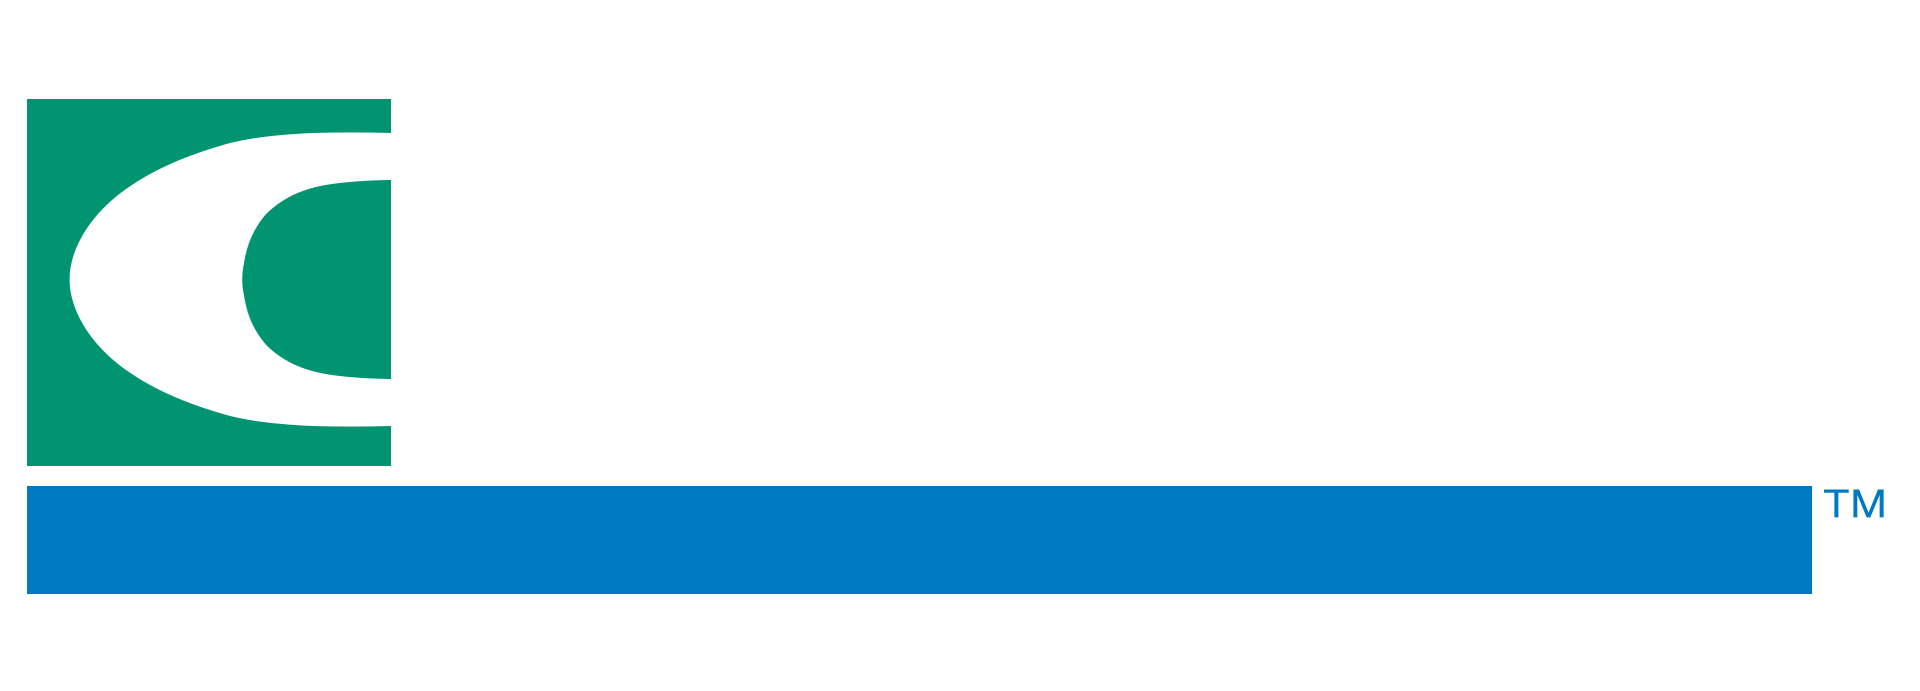 Countryside Feed, LLC